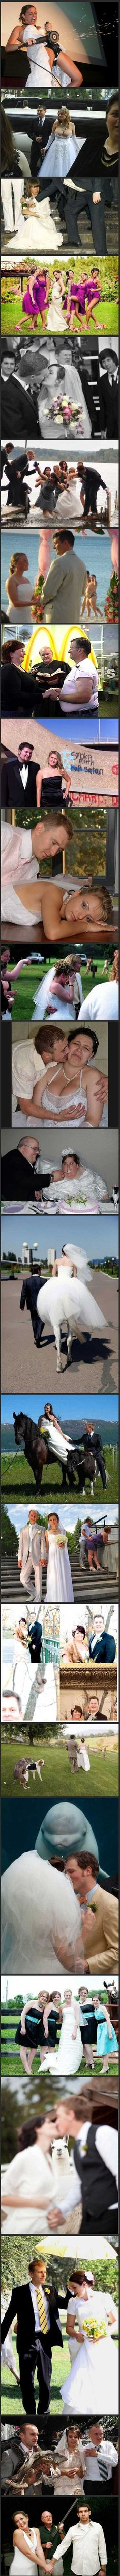 Mostly unfortunate wedding photos.. So so bad and yet so funny!